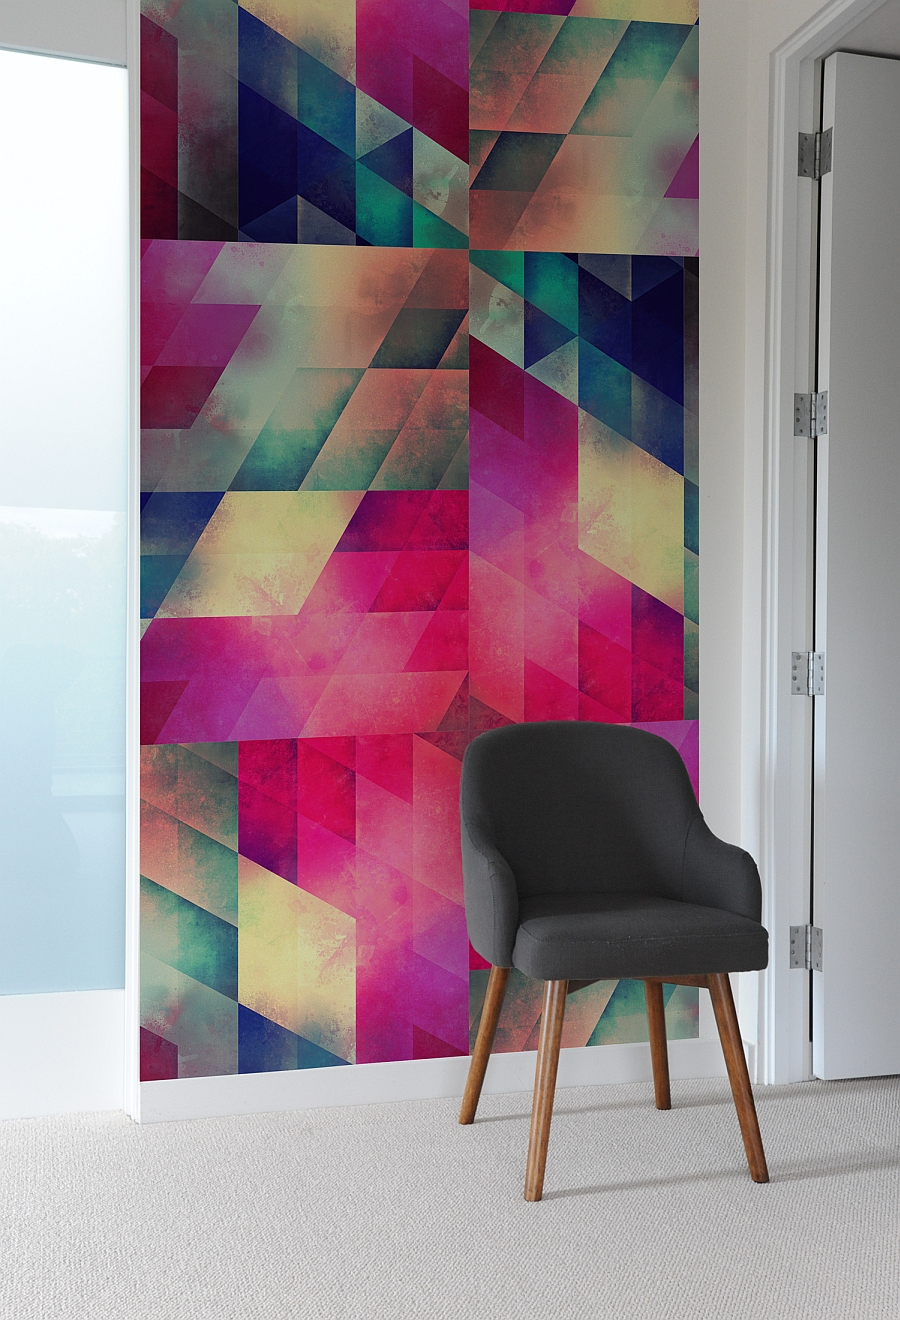 Colorful-geometric-patterned-wall-tiles-from-Bilk